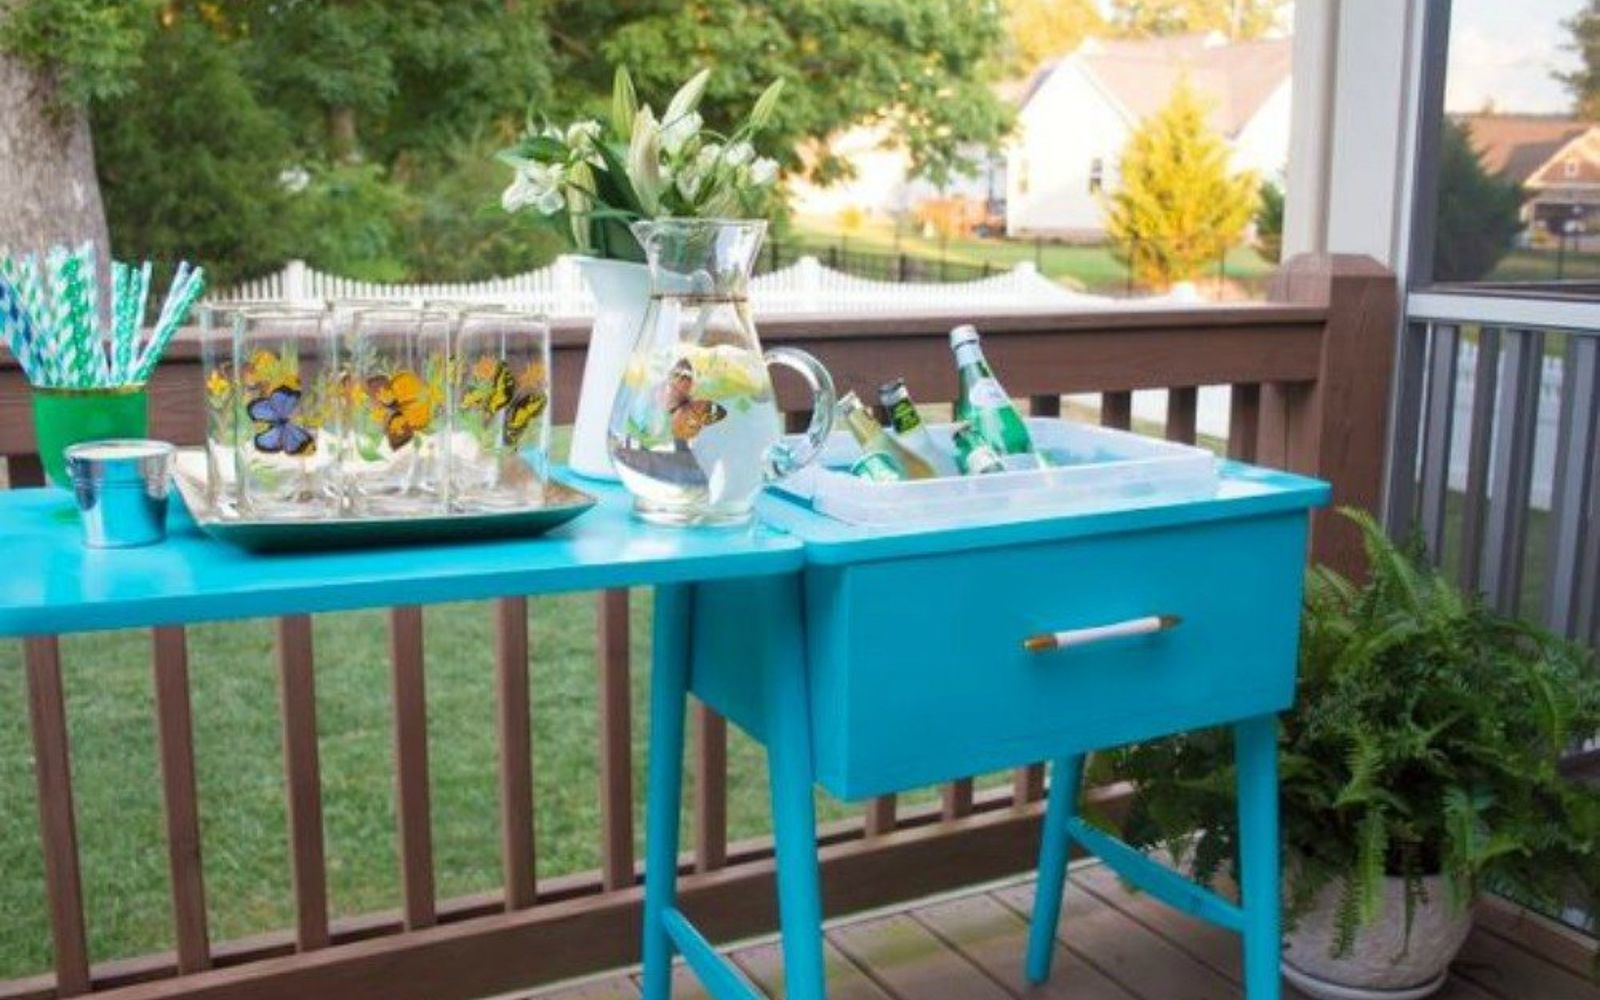 s 12 wildly creative ways to use your old sewing table, painted furniture, Reconstruct it into a super drink bar